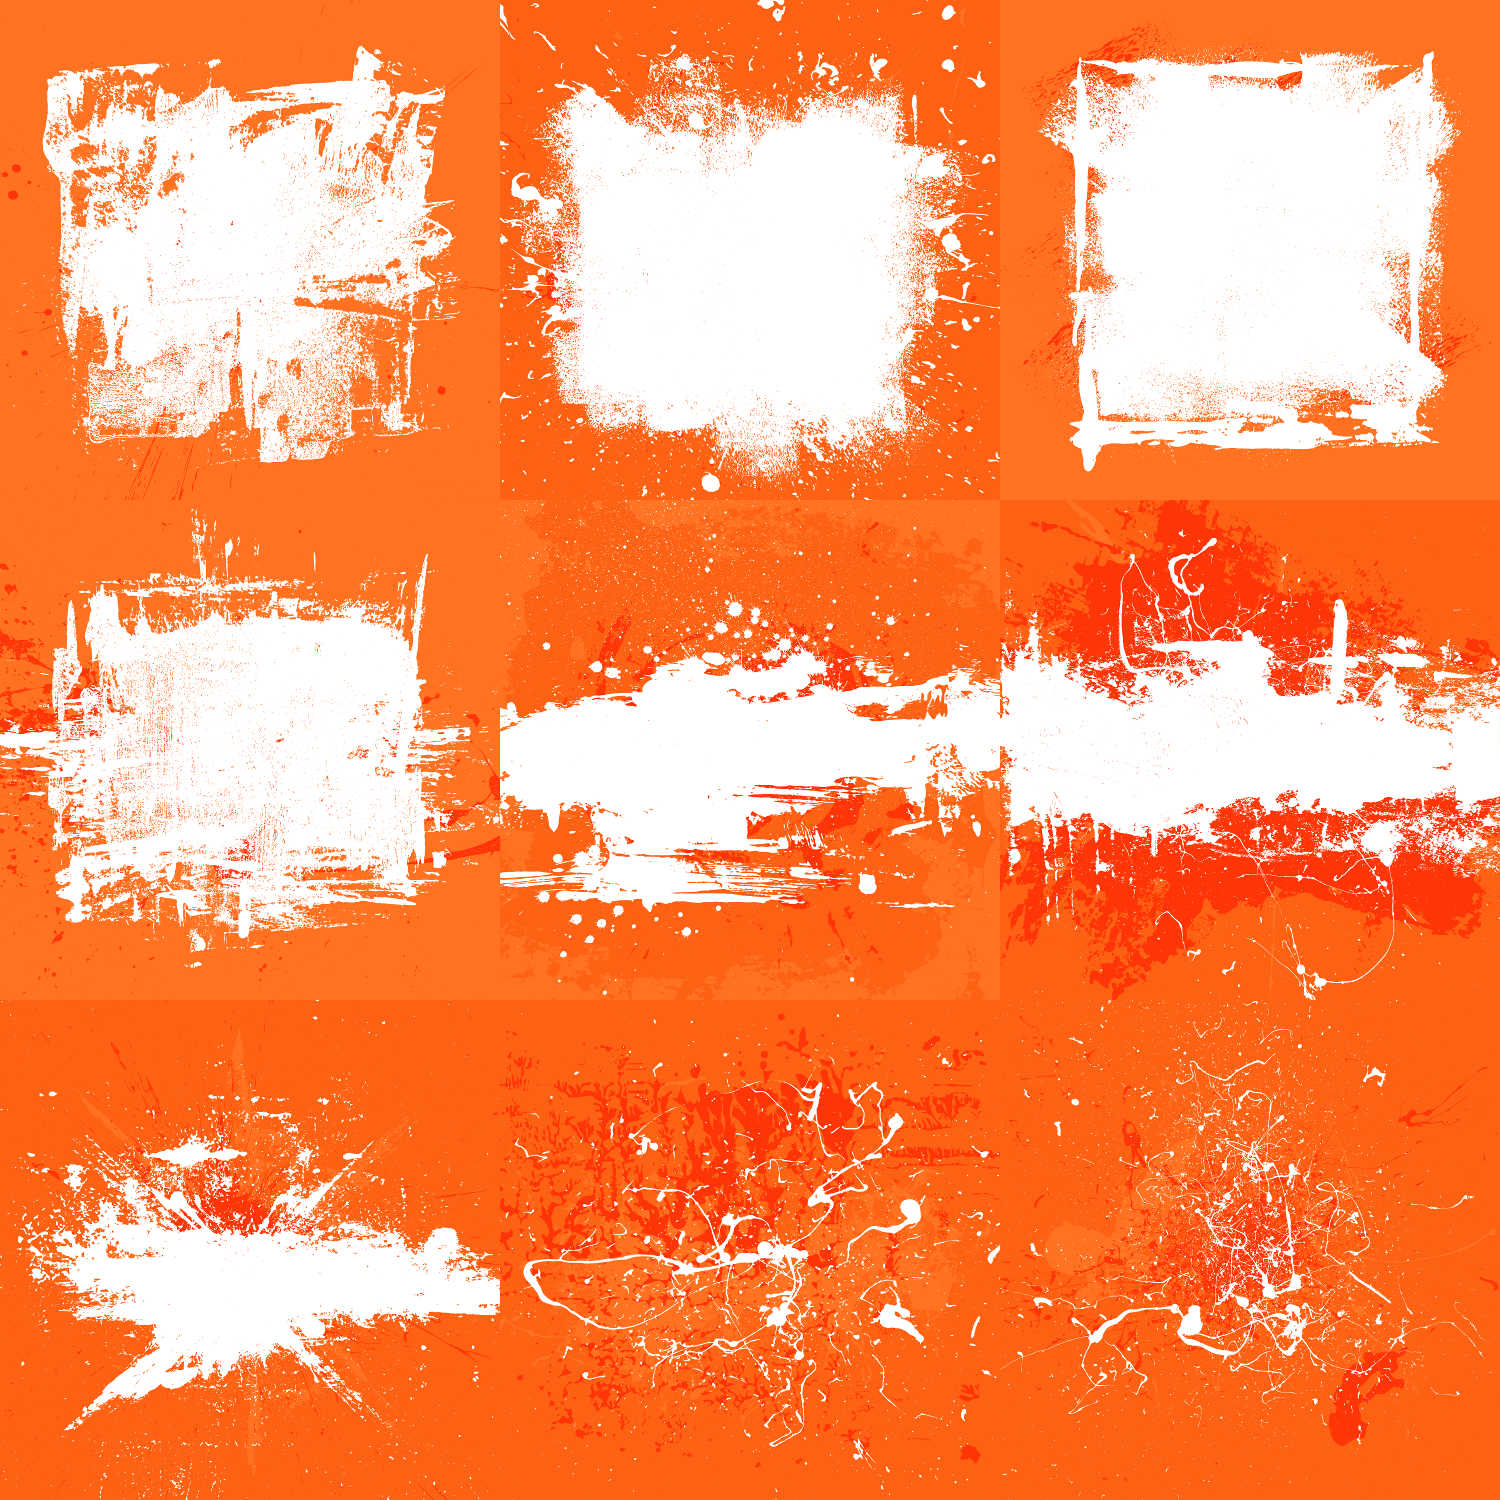 orange-white-grunge-background-cover.jpg